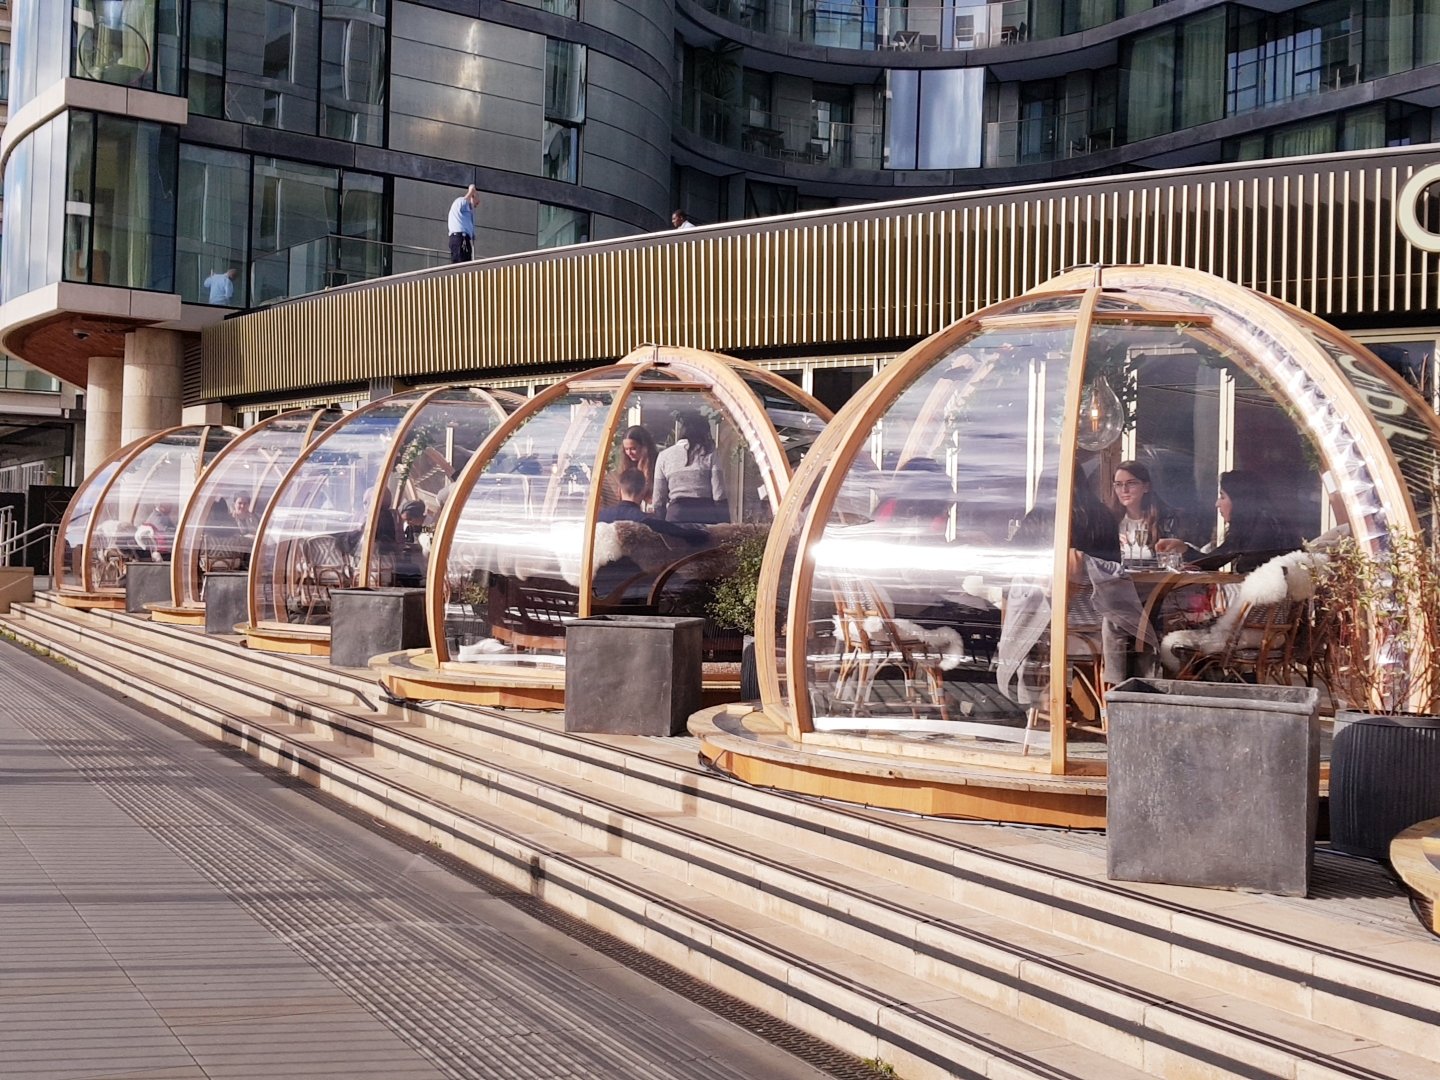 A photo of a very cook waterfront restaurant with very cool outdoor glass dining pods to stay warm and still enjoy the view!